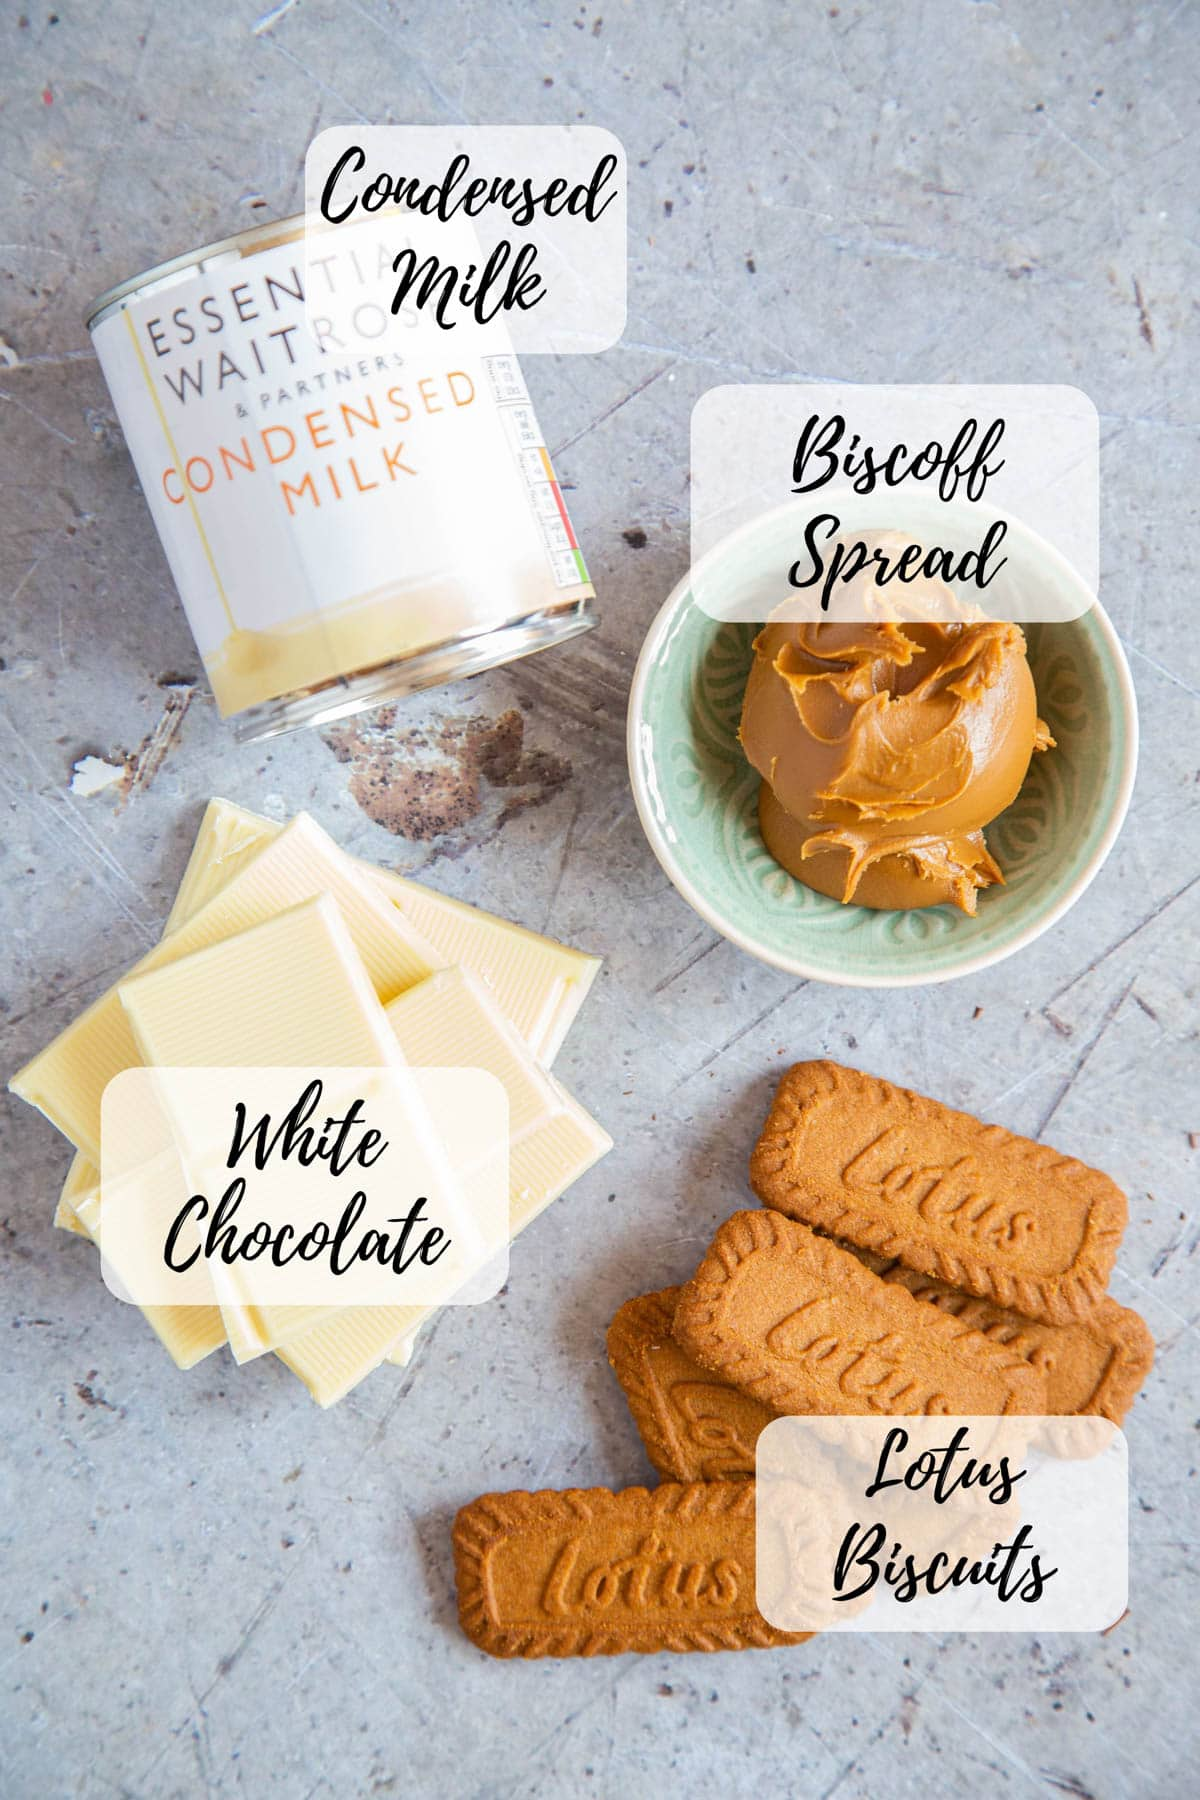 Ingredients for Biscoff fudge - condensed milk, biscoff spread, lotus biscuits, and white chocolate.